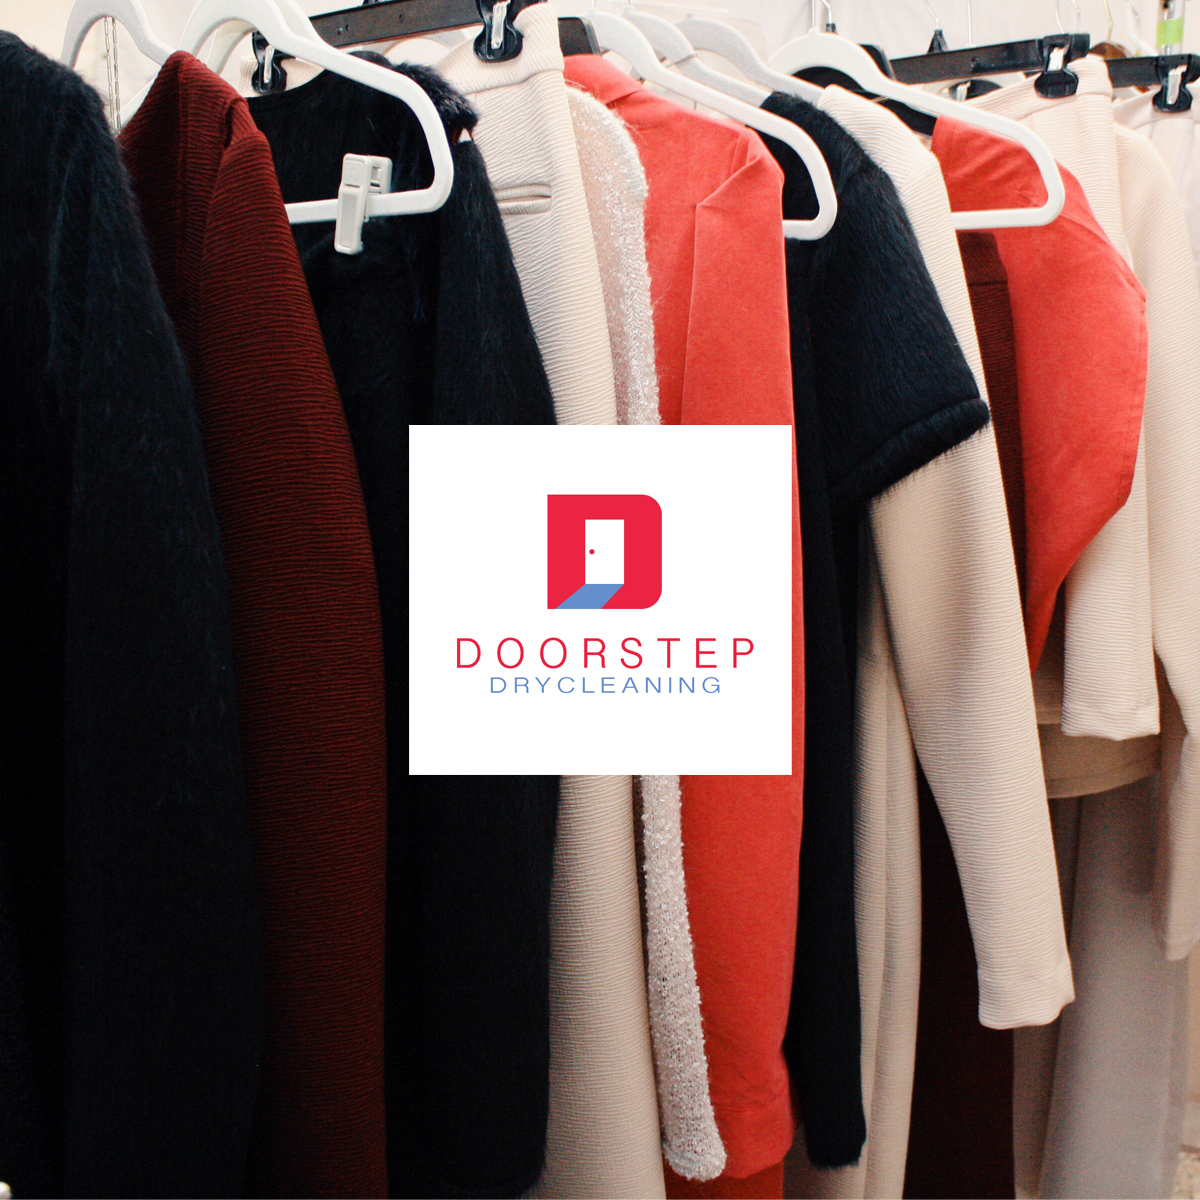 Doorstep Drycleaning Will Help the Nashville Fashion Forward Fund     Doorstep Drycleaning Will Help the Nashville Fashion Forward Fund and YOU